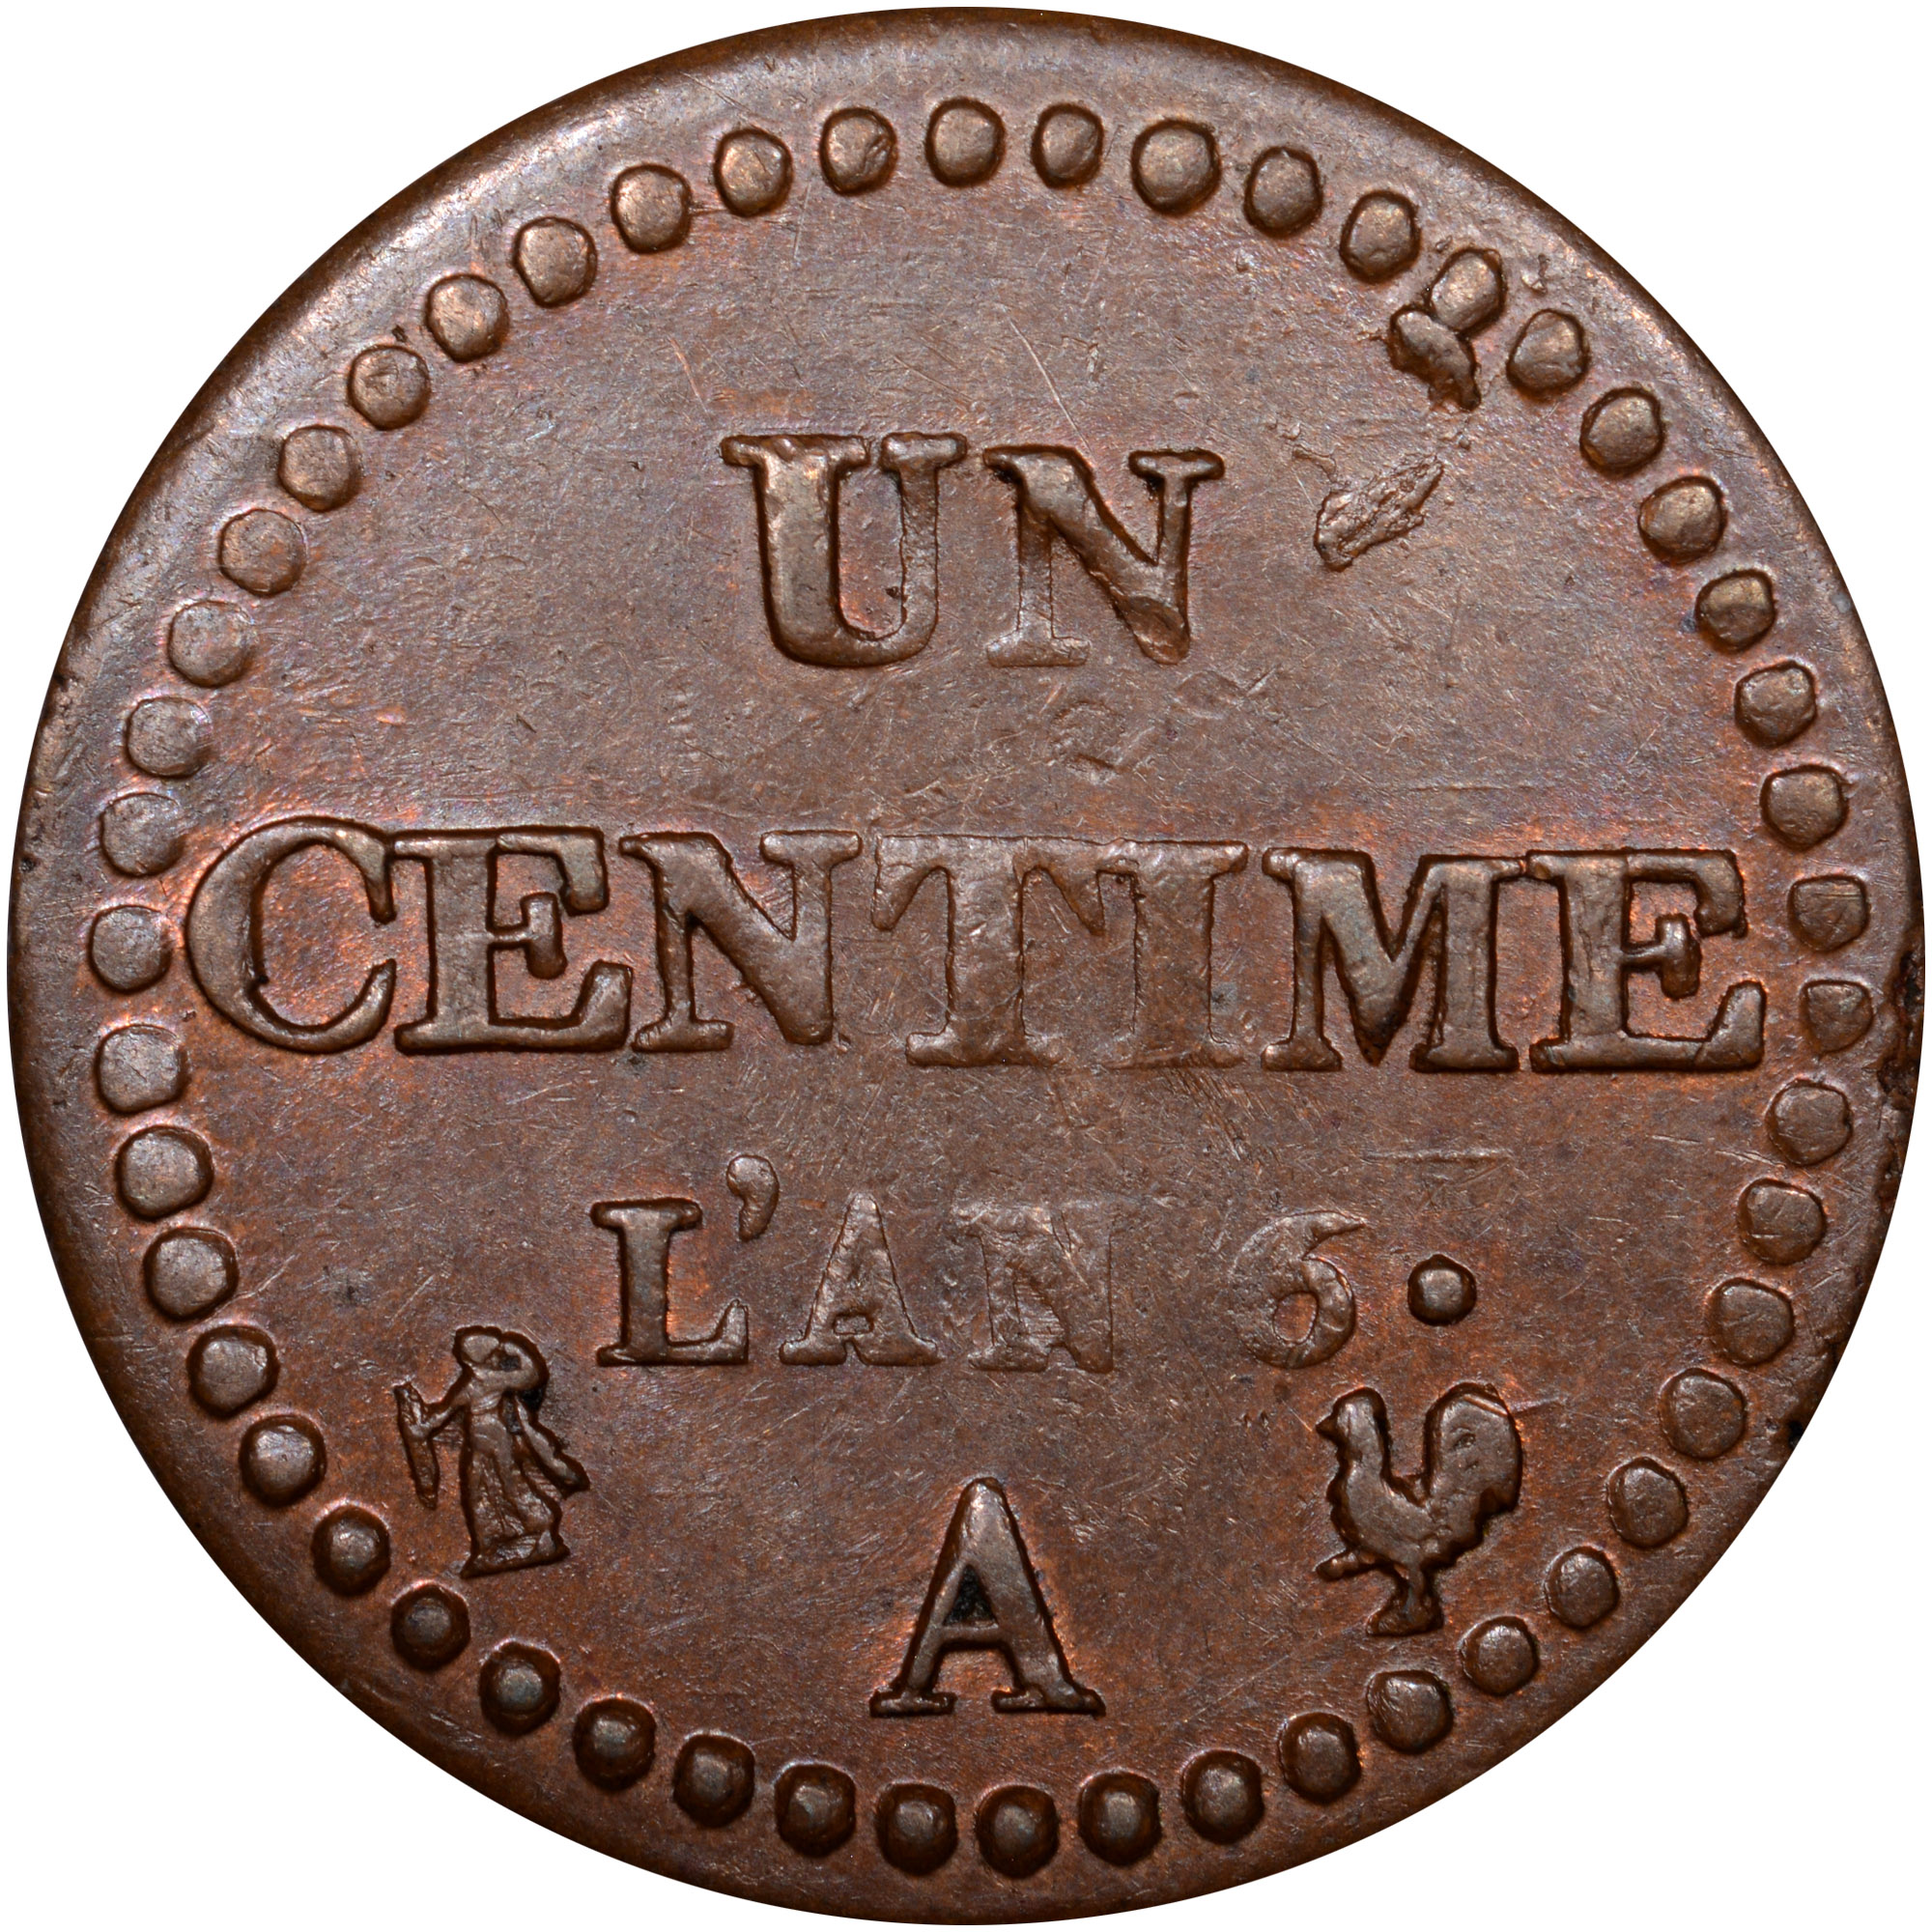 France Centime reverse